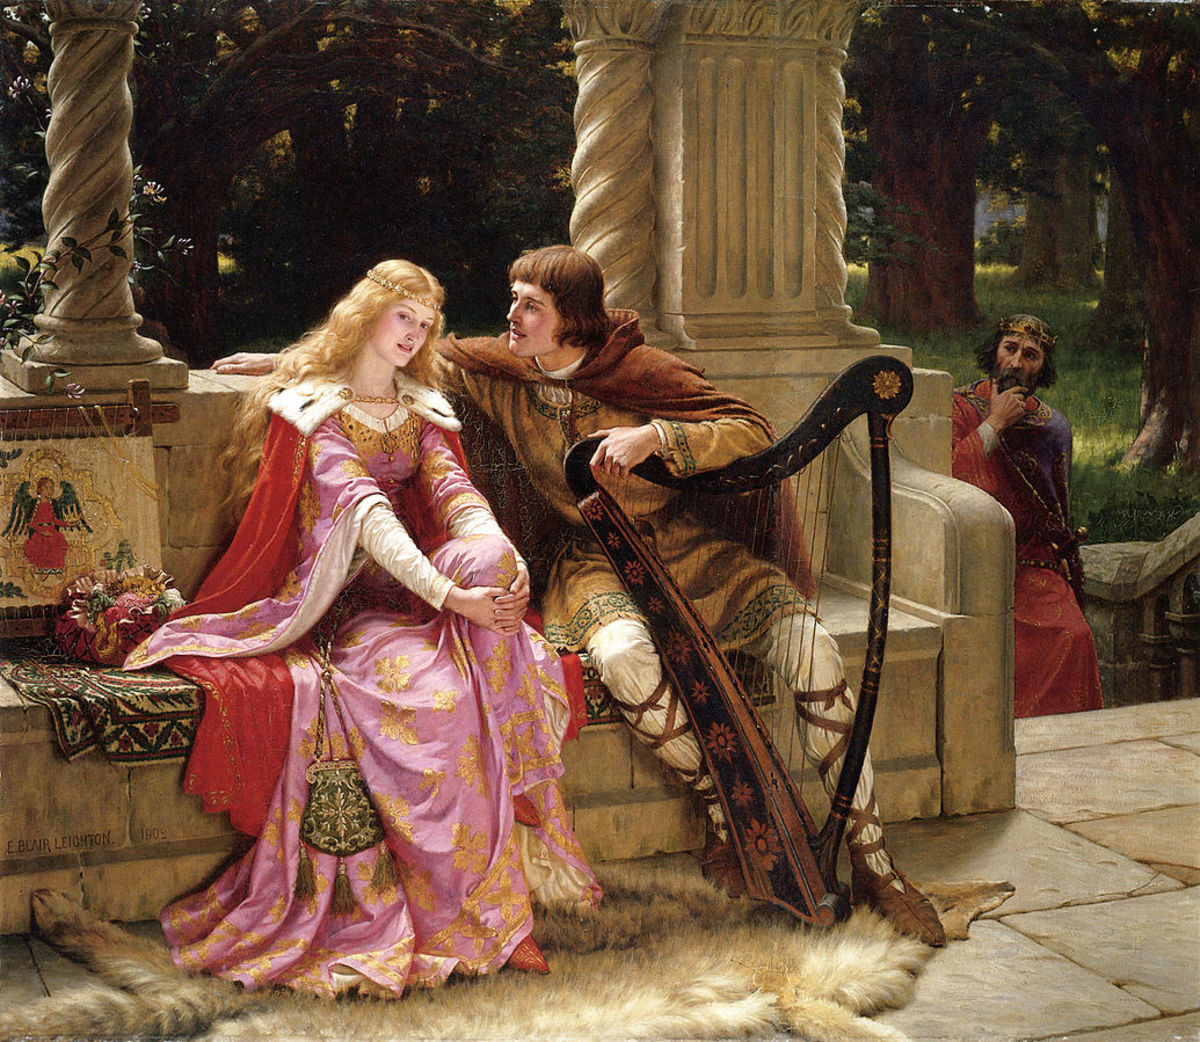 Tristan and Isolde (1902) by Edmund Leighton